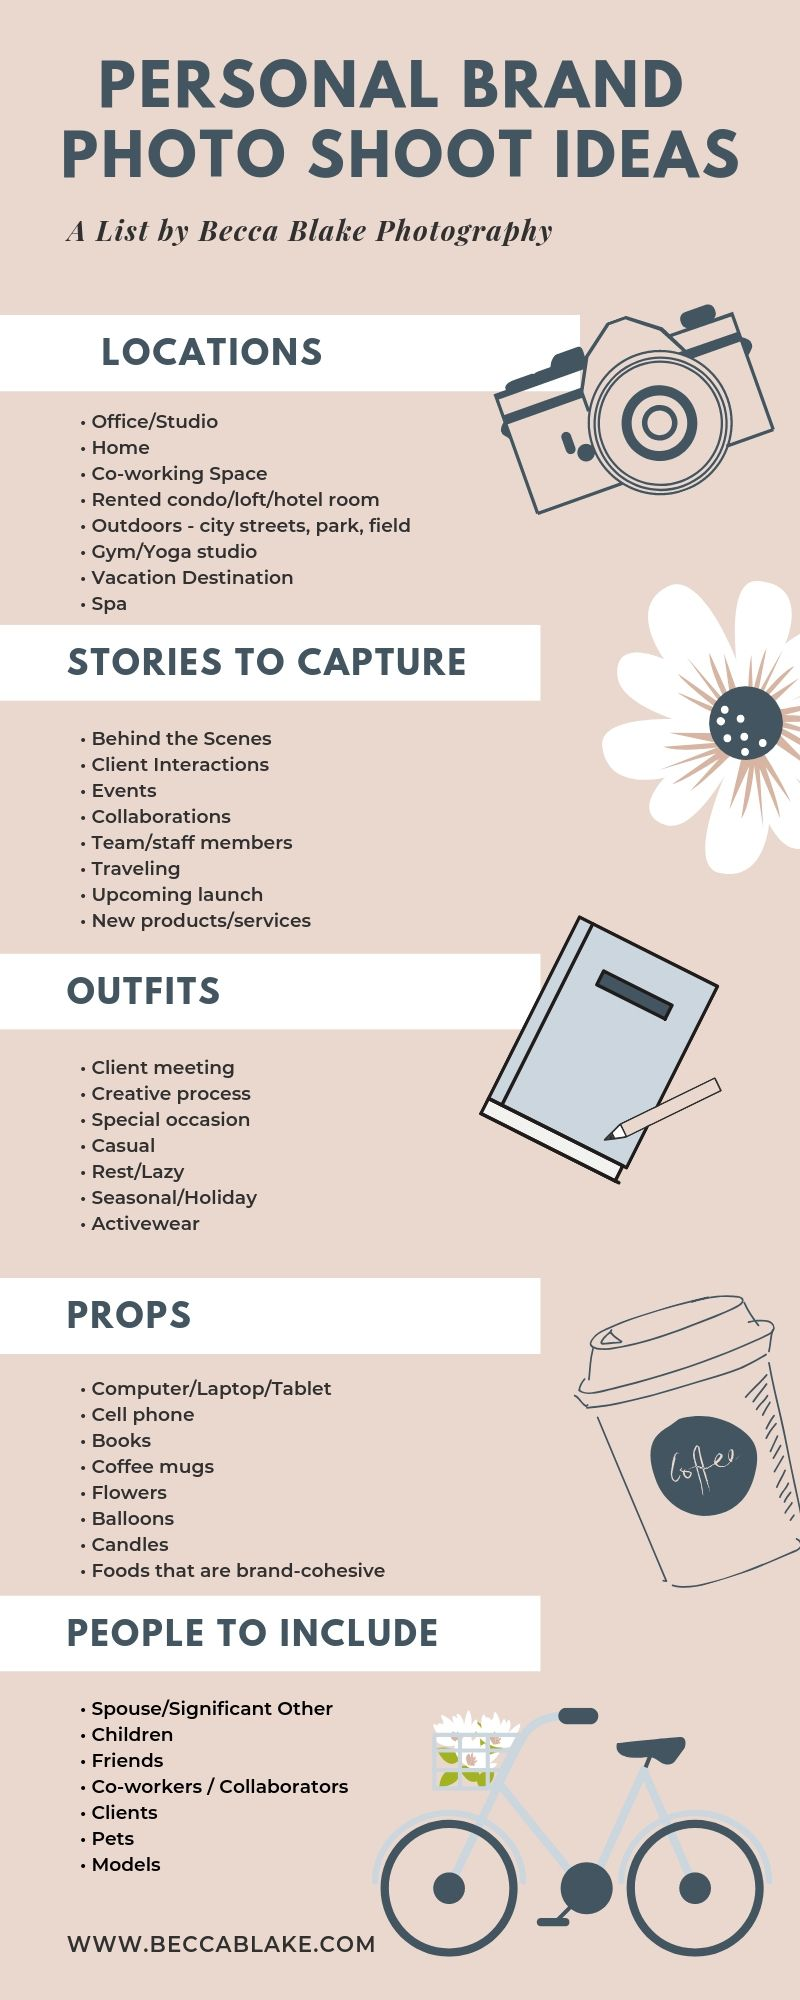 12 Ideas for Your Next Personal Brand Photo Shoot  Becca Blake